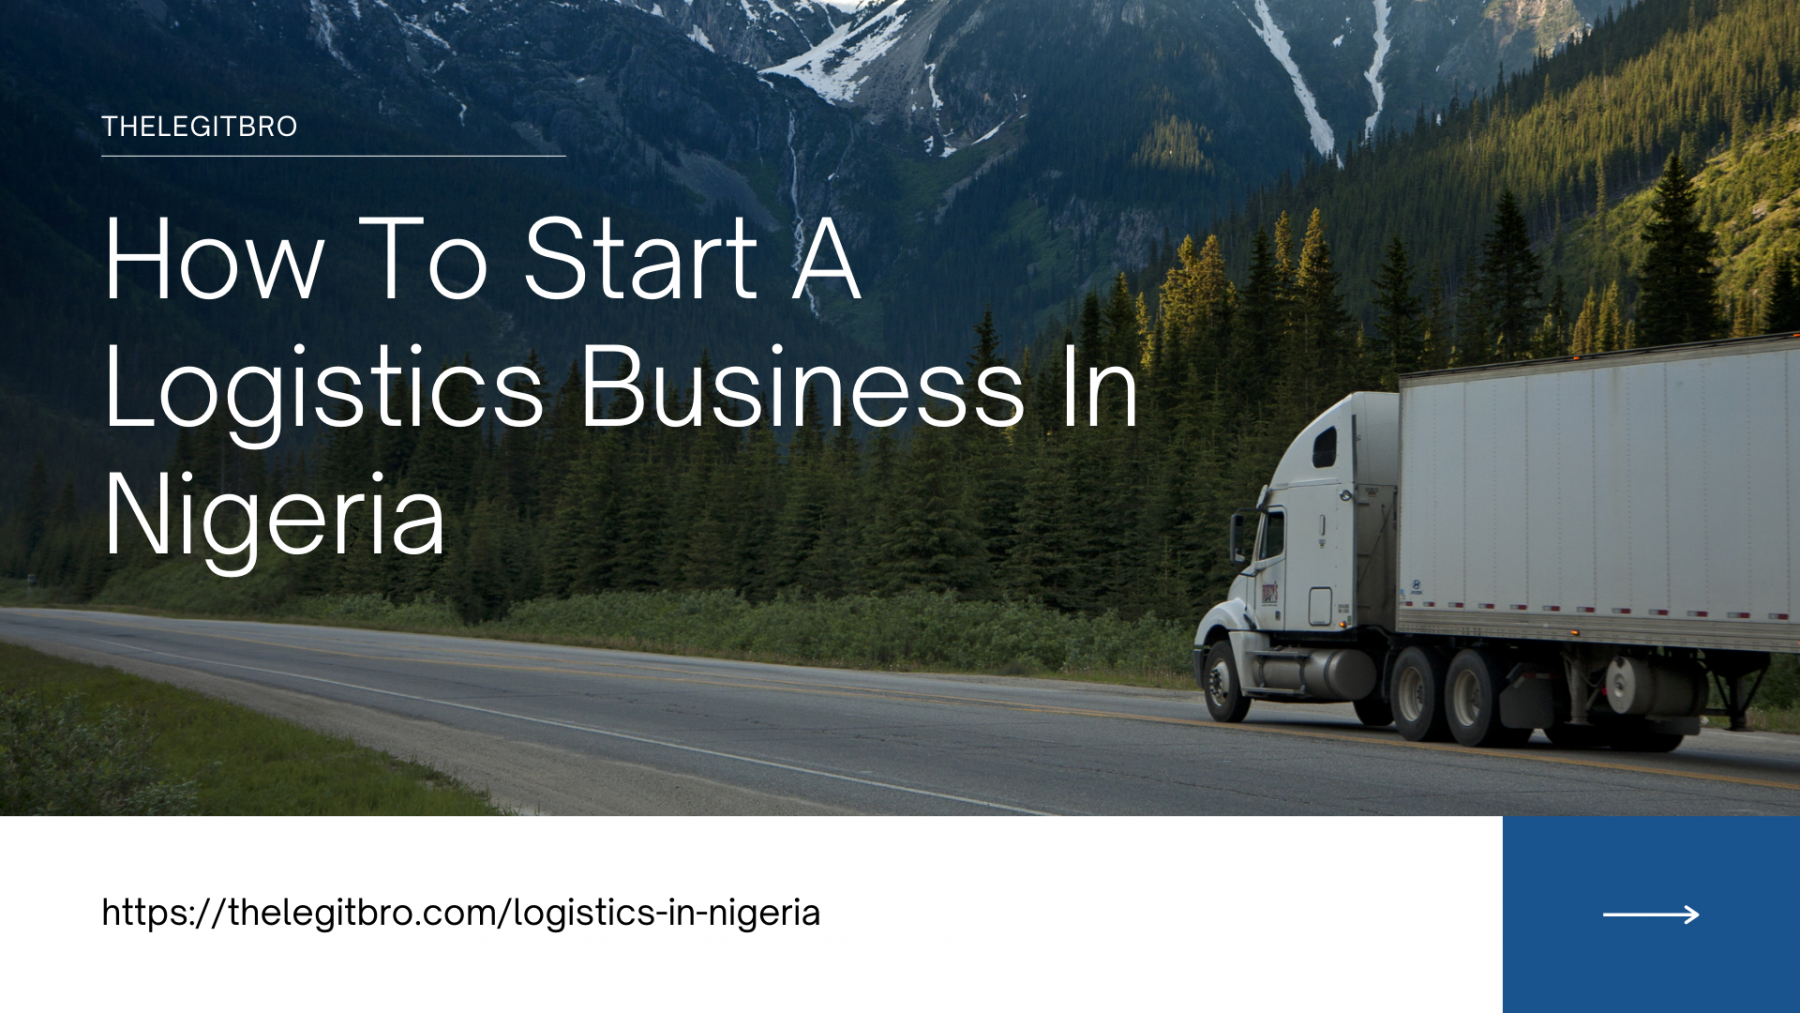 How To Start A Logistics Business In Nigeria